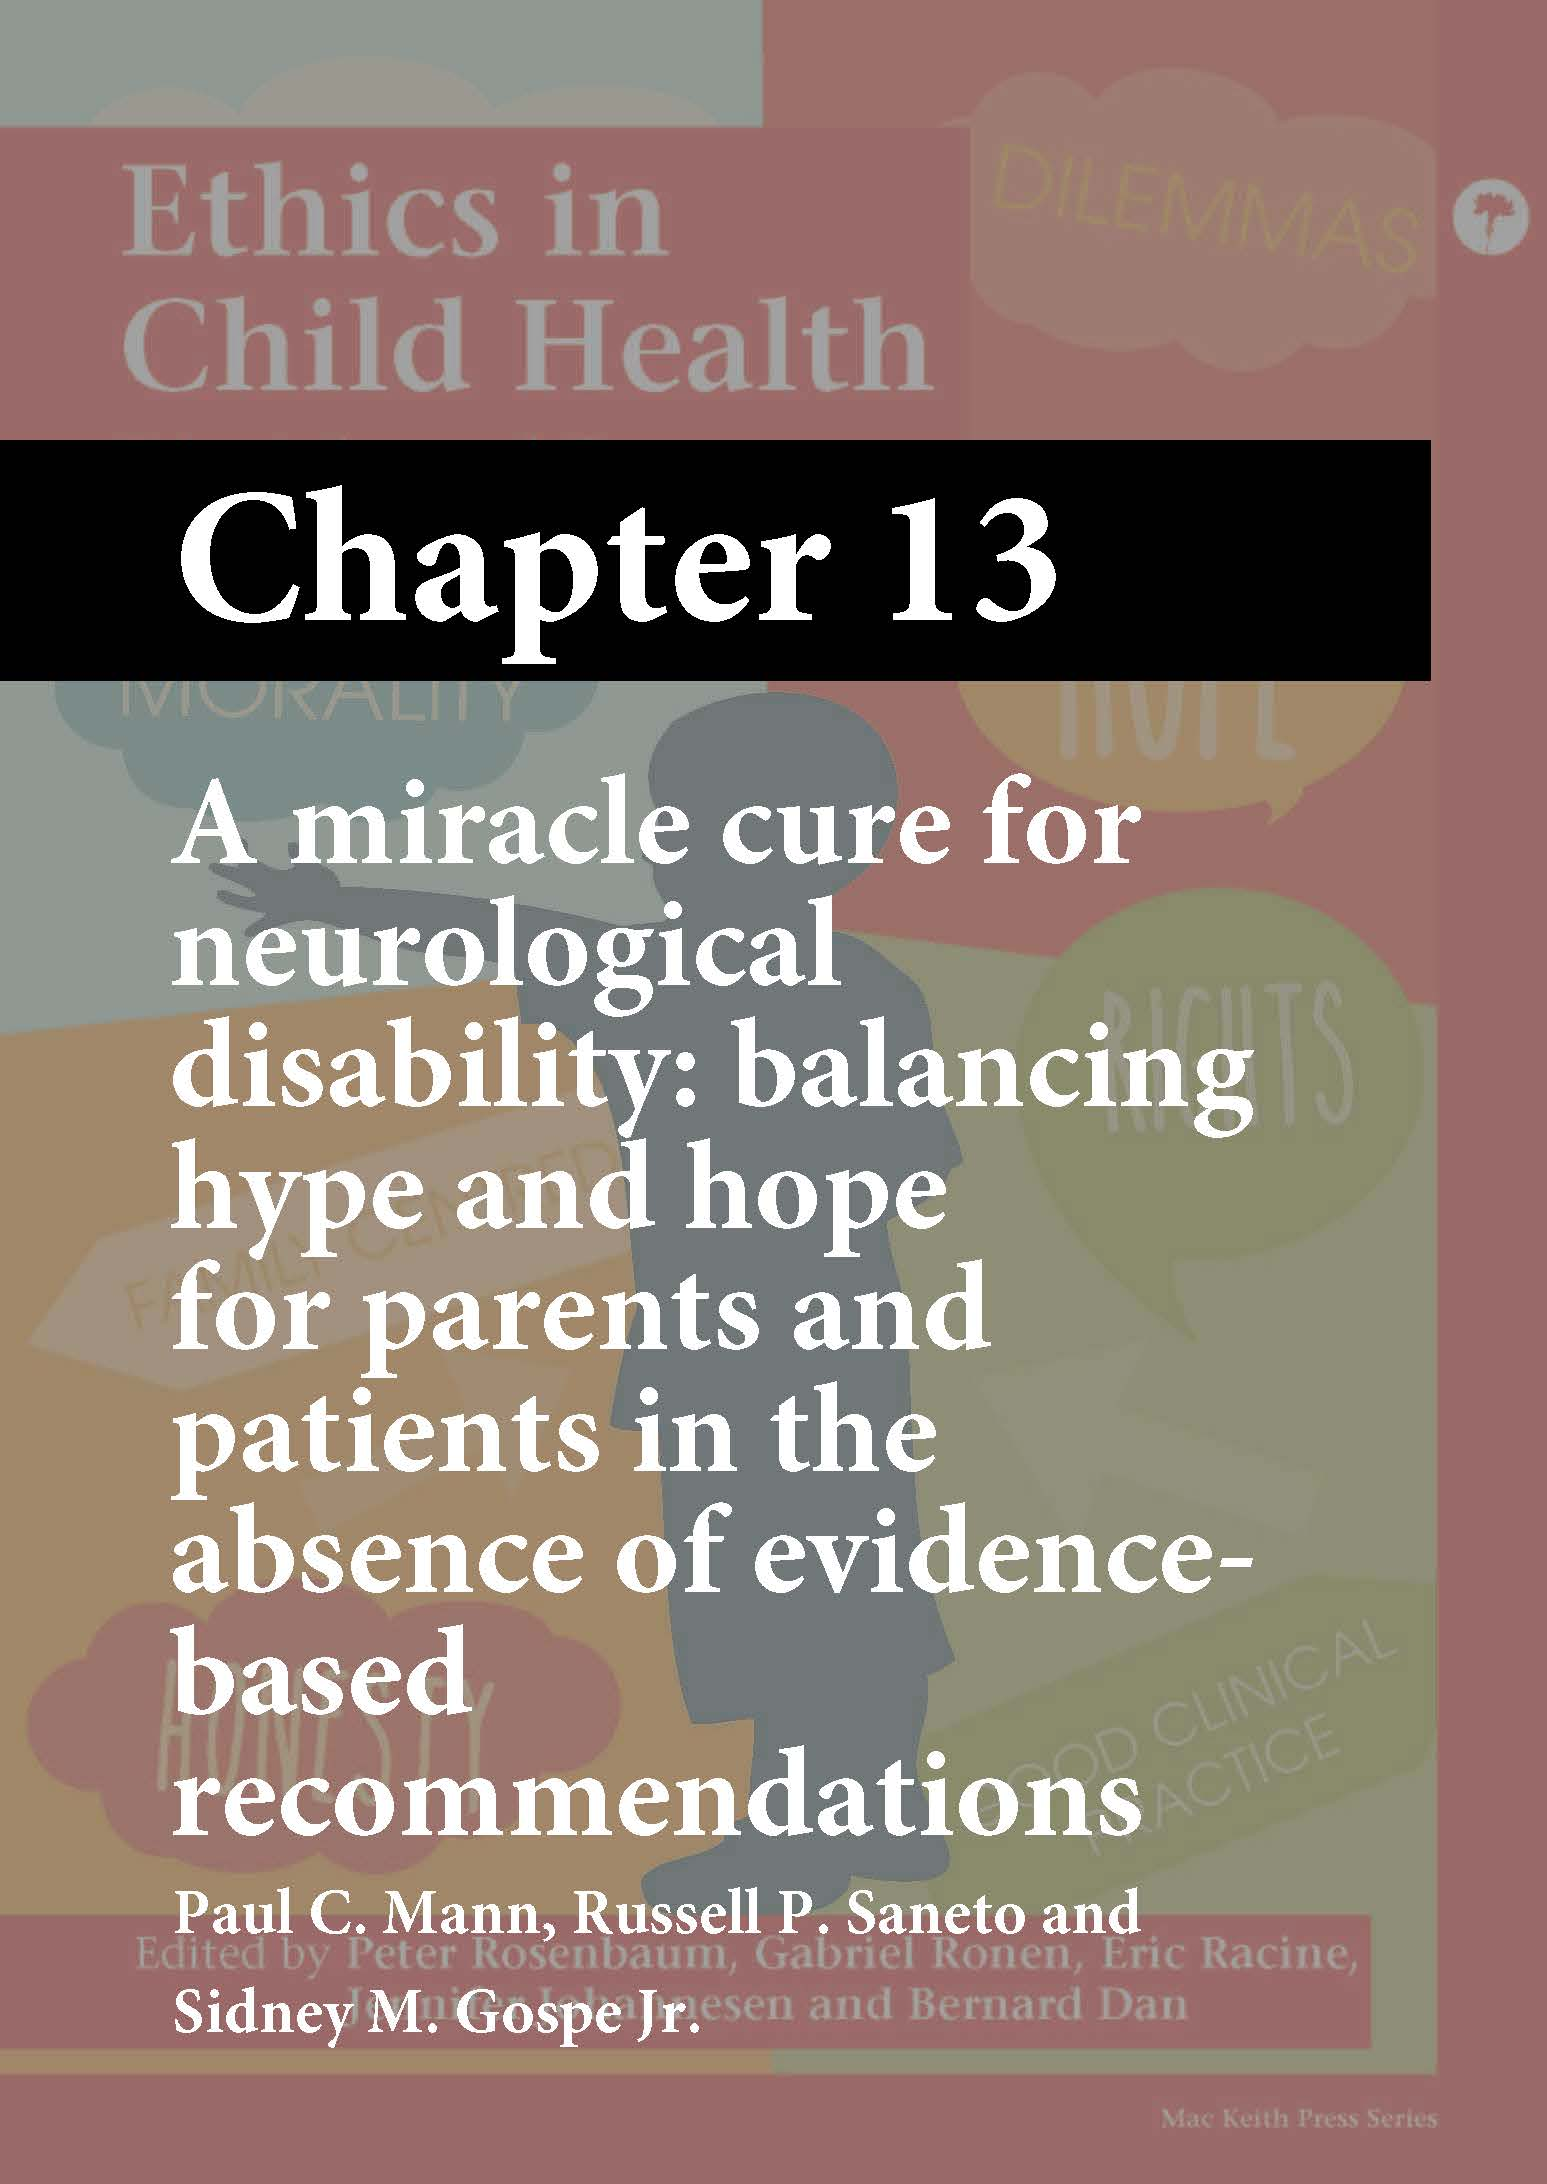 Ethics in Child Health, Rosenbaum, Chapter 13 cover